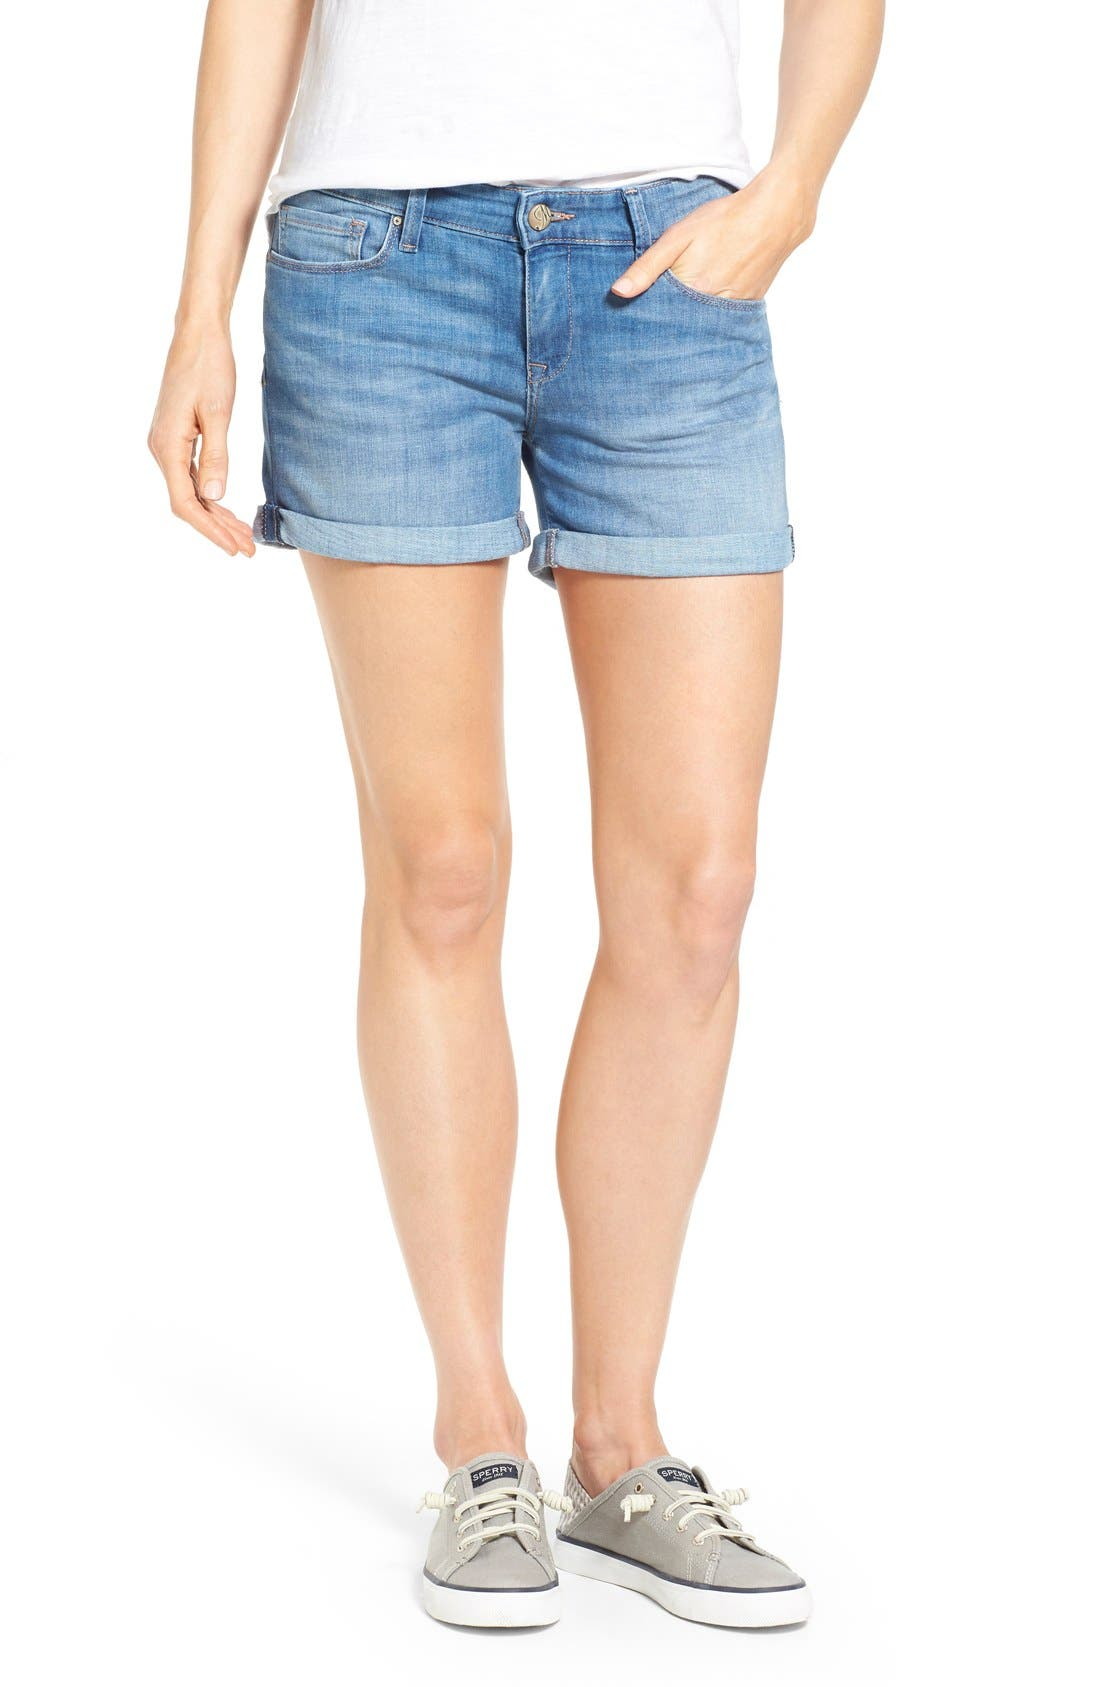 MAVI JEANS 'Vanna' Cuffed Denim Shorts